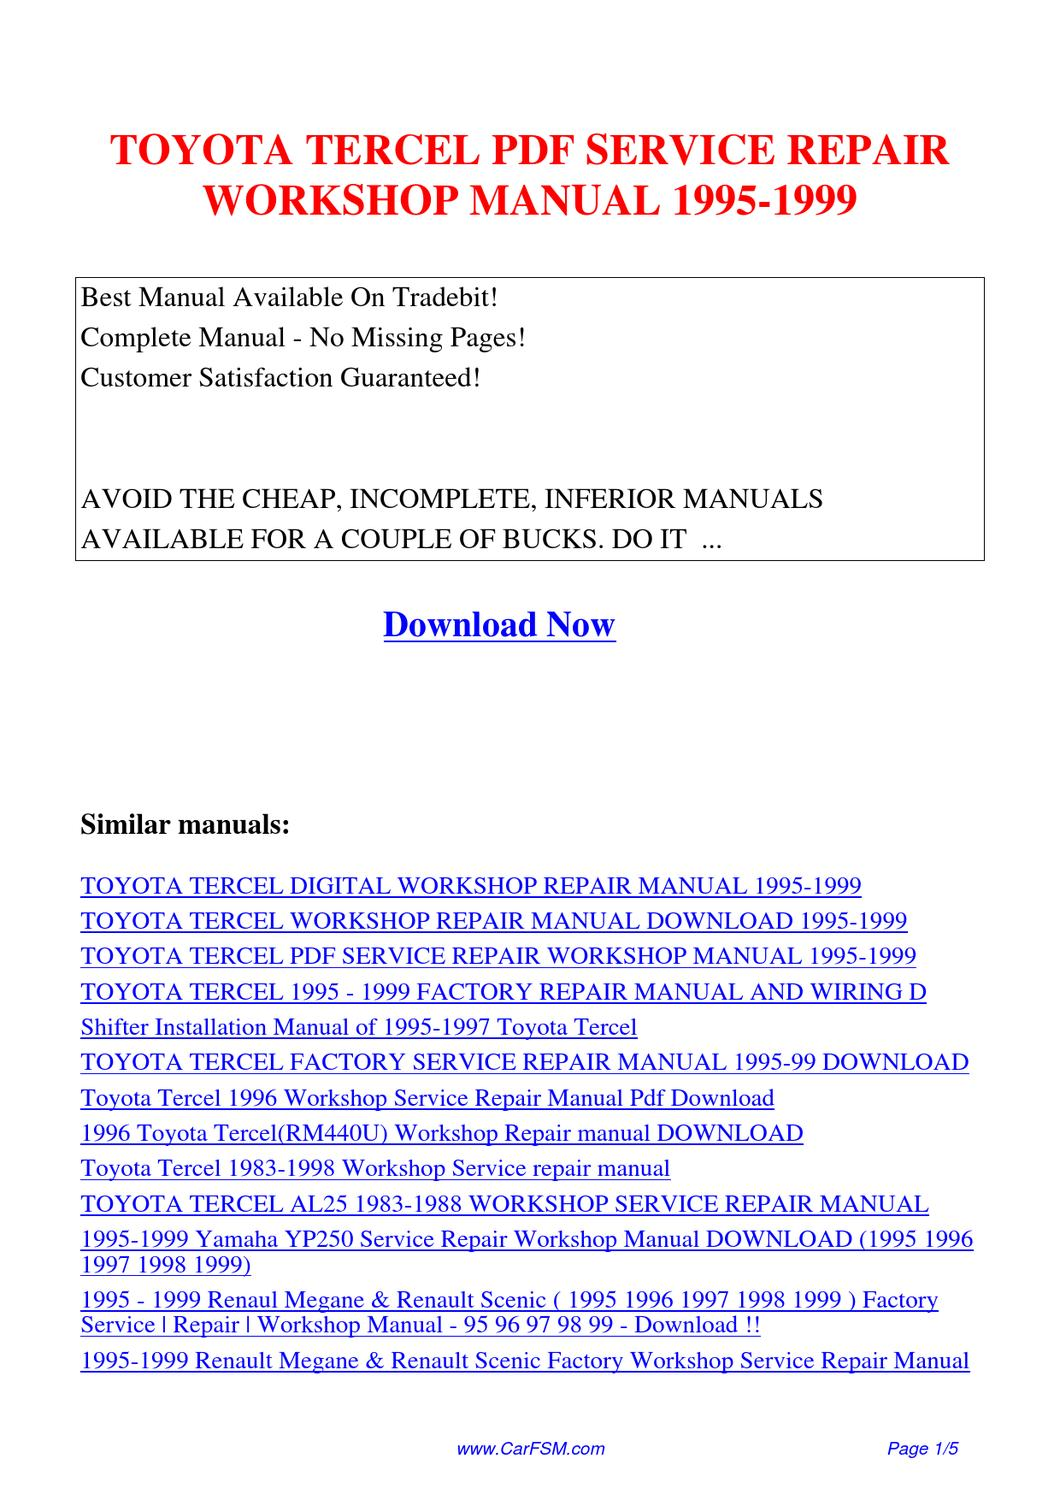 TOYOTA_TERCEL_SERVICE_REPAIR_WORKSHOP_MANUAL_1995-1999 by Guang Dong - issuu